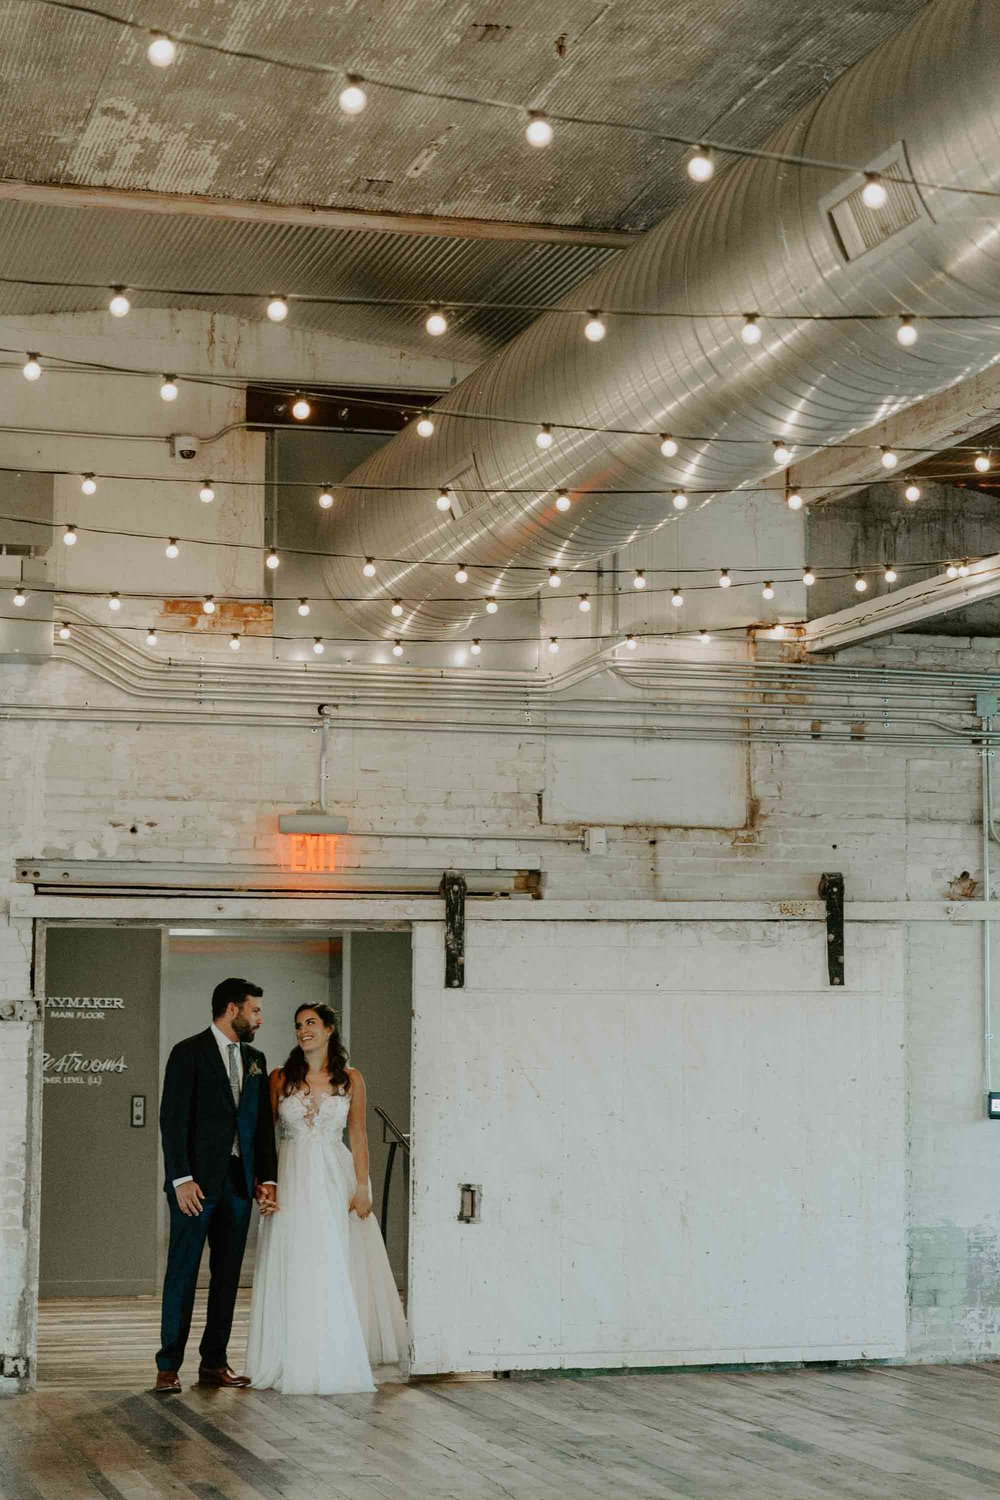 journeyman_distillery_wedding_photographer_chicago_il_wright_photographs-6863.jpg